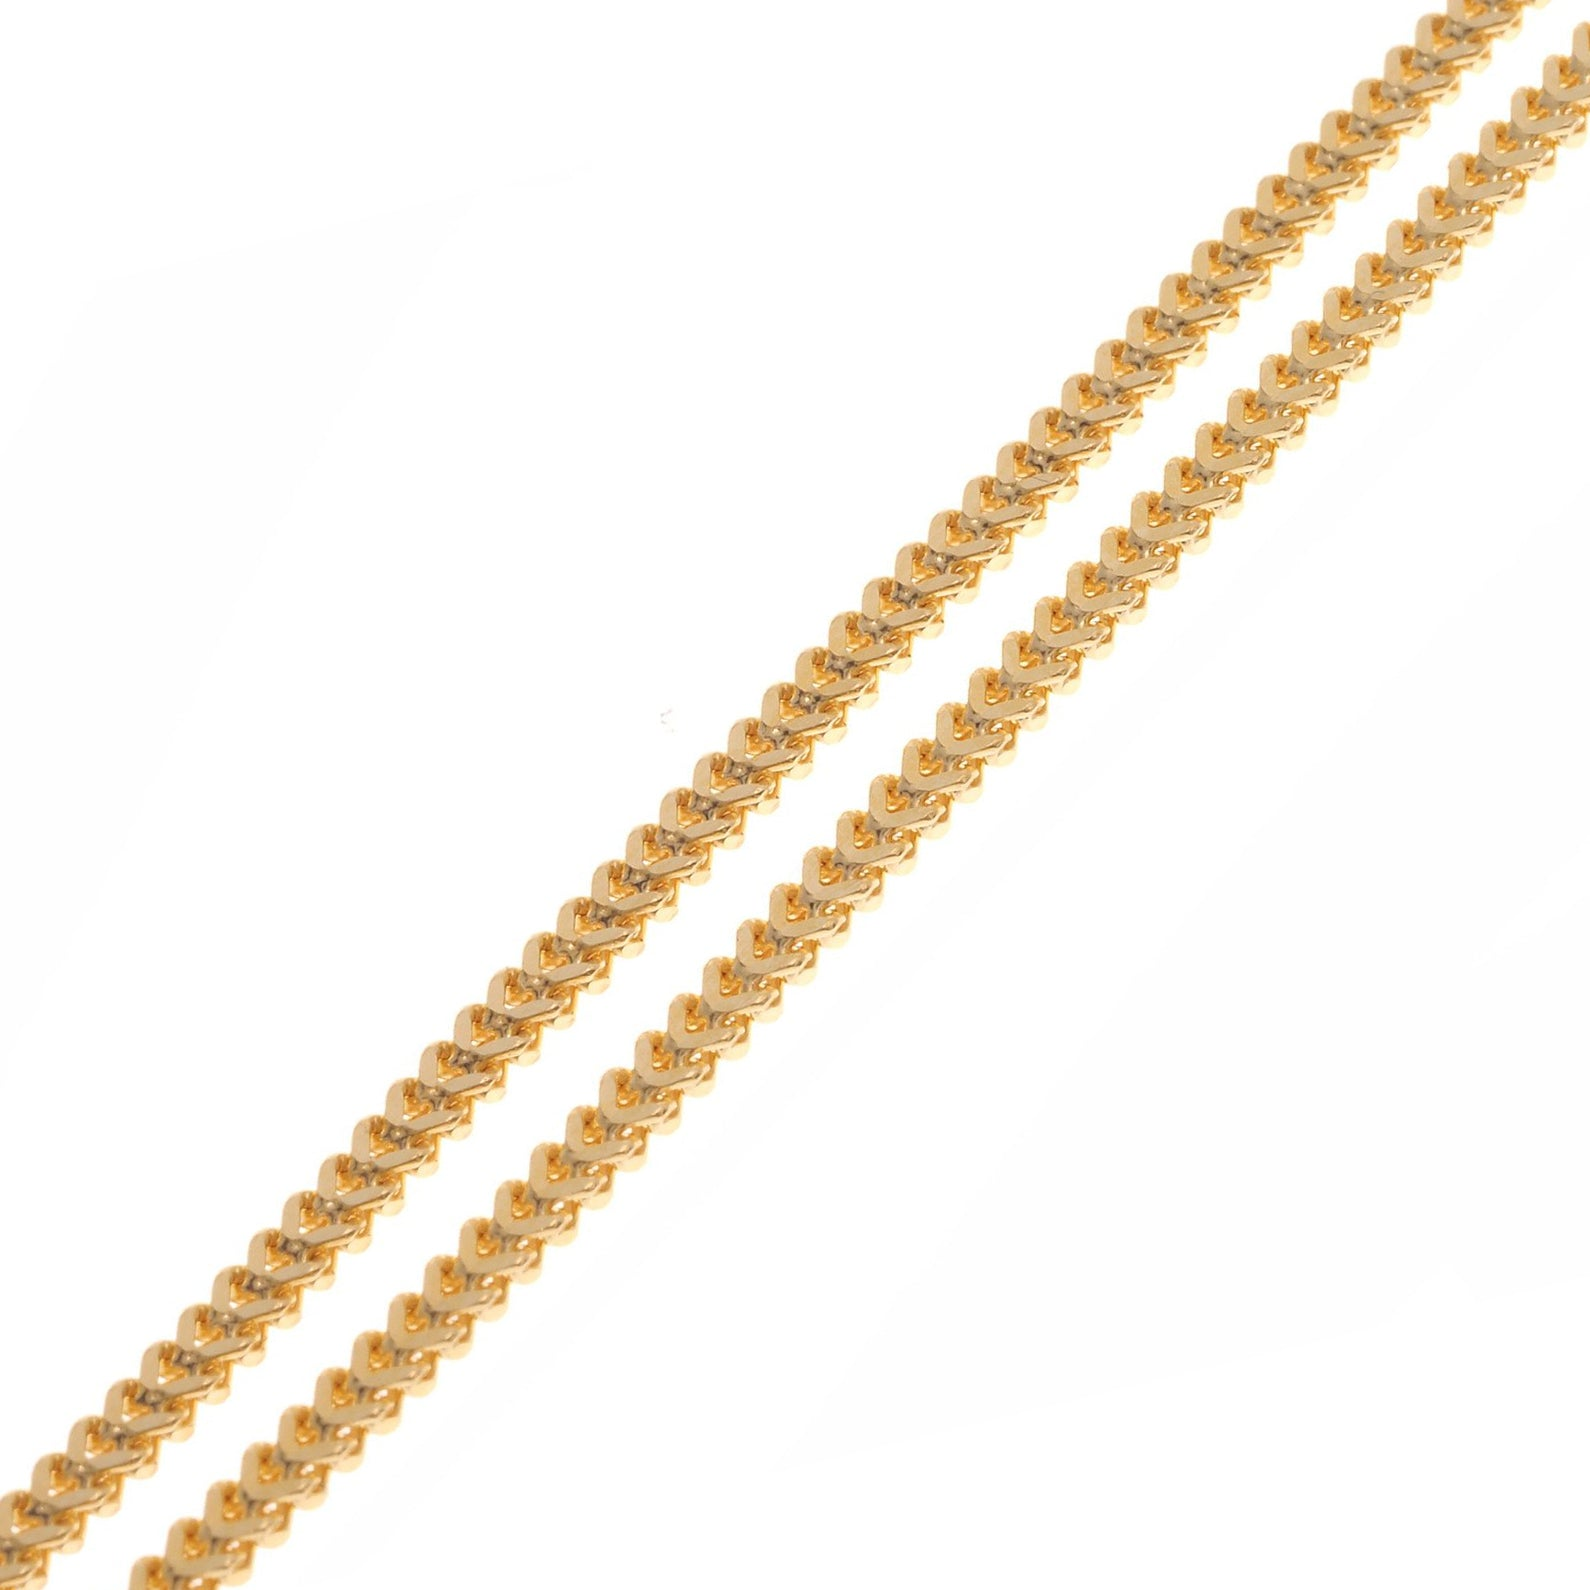 chain present collection gold certified is cid set pearls categories sri jagdamba grandiose buy chains plain